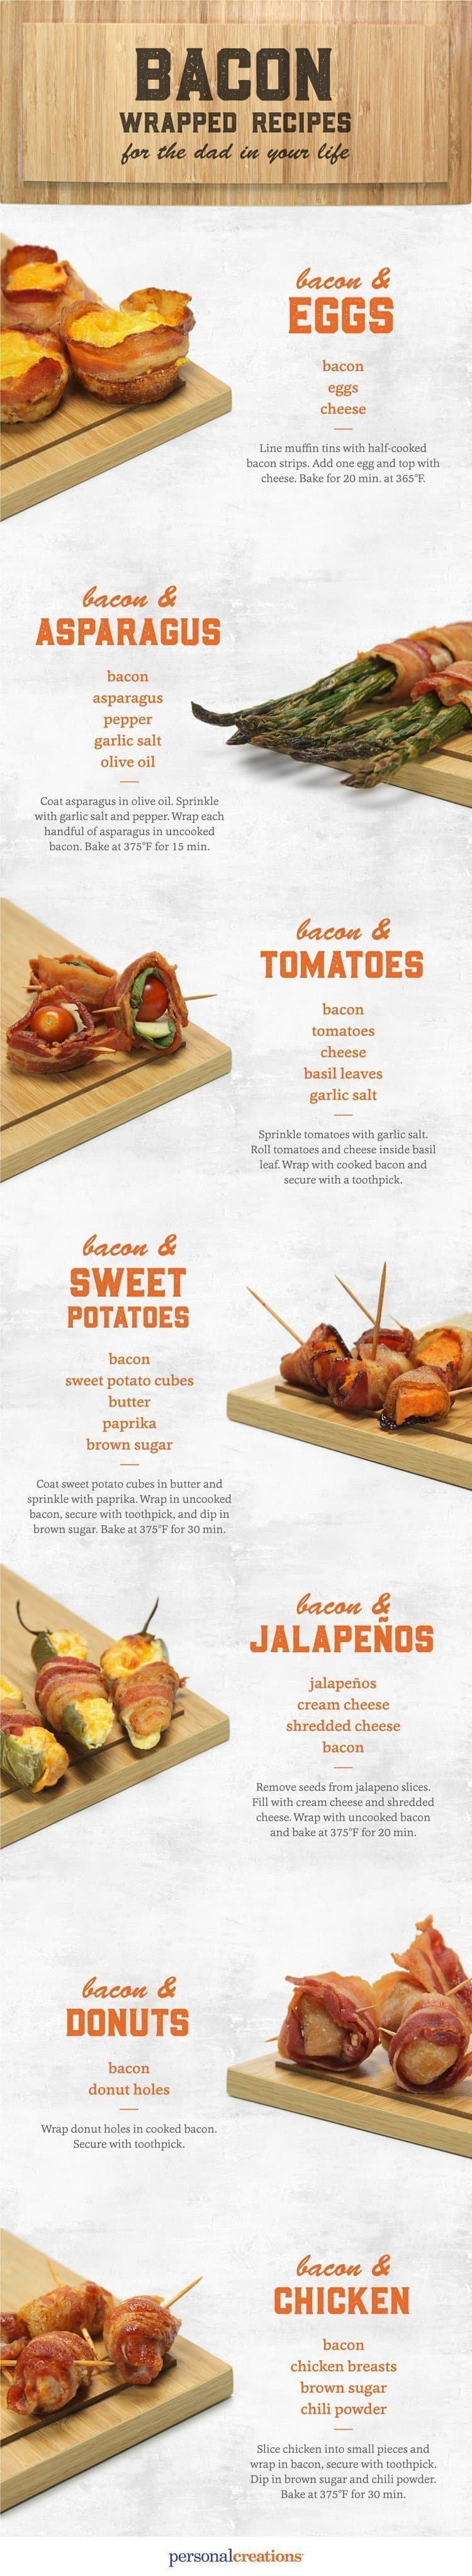 bacon wrapped snacks